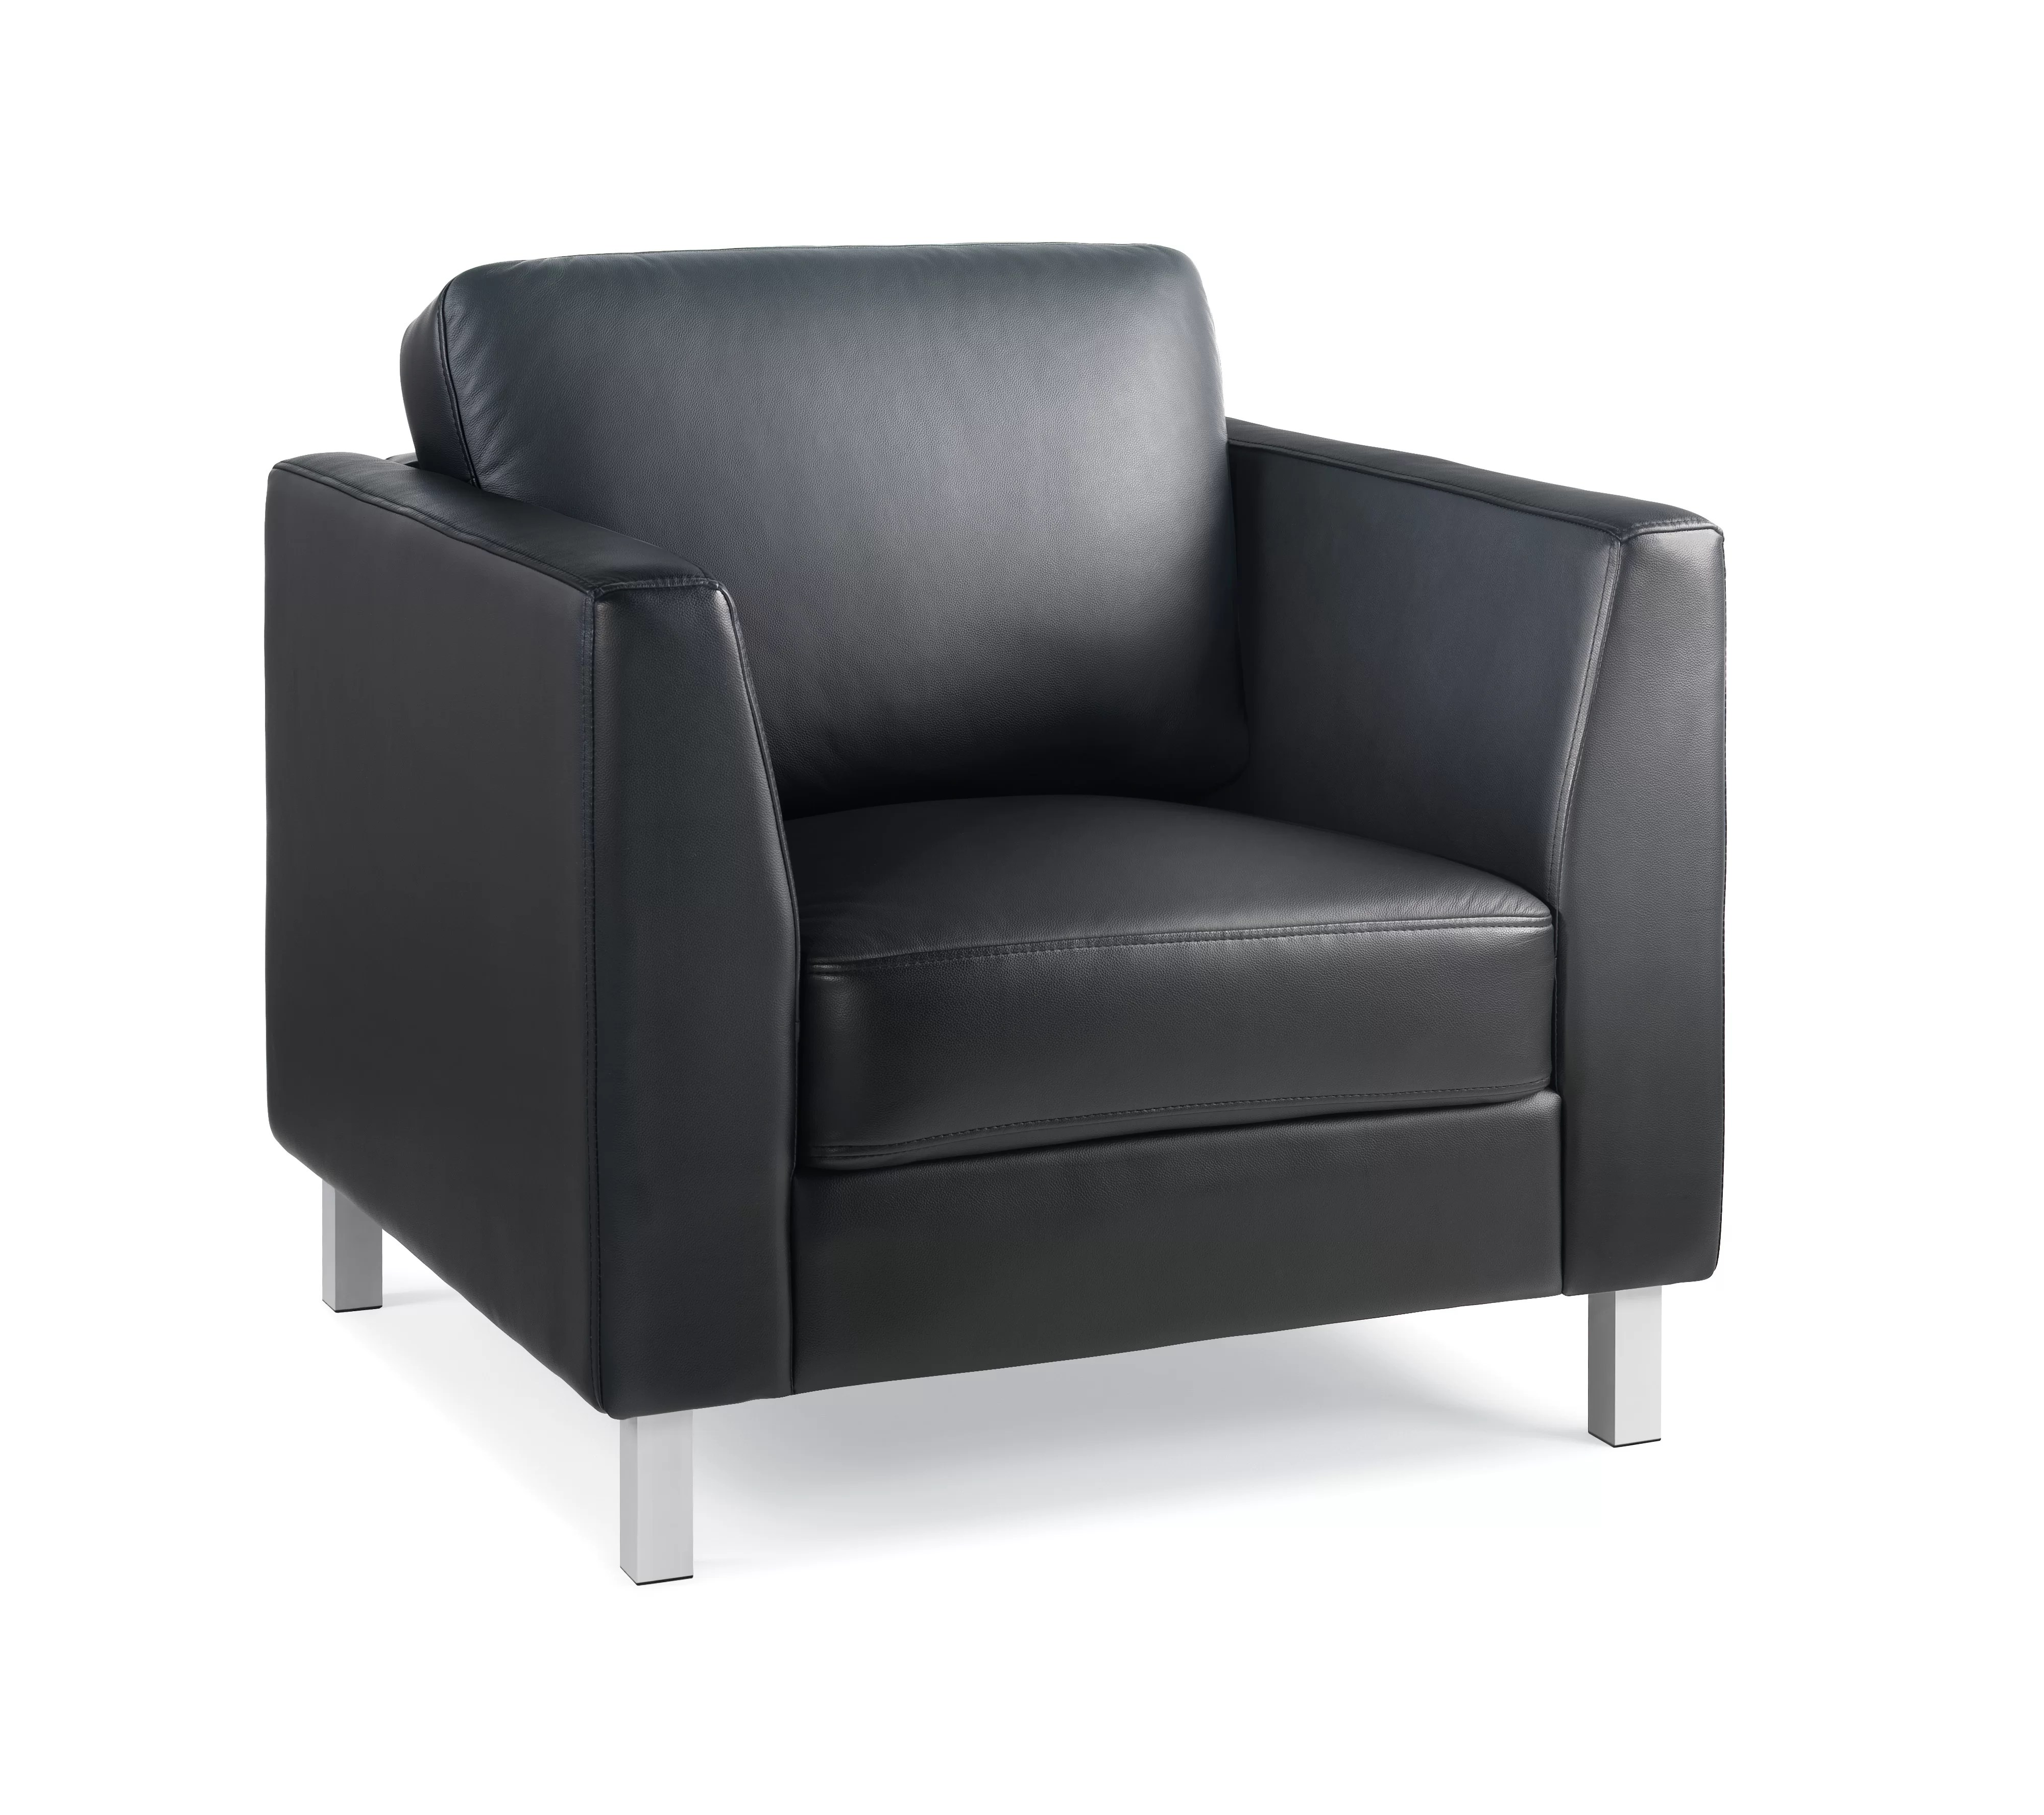 Leather Lounge Lincoln Leather Lounge Chair